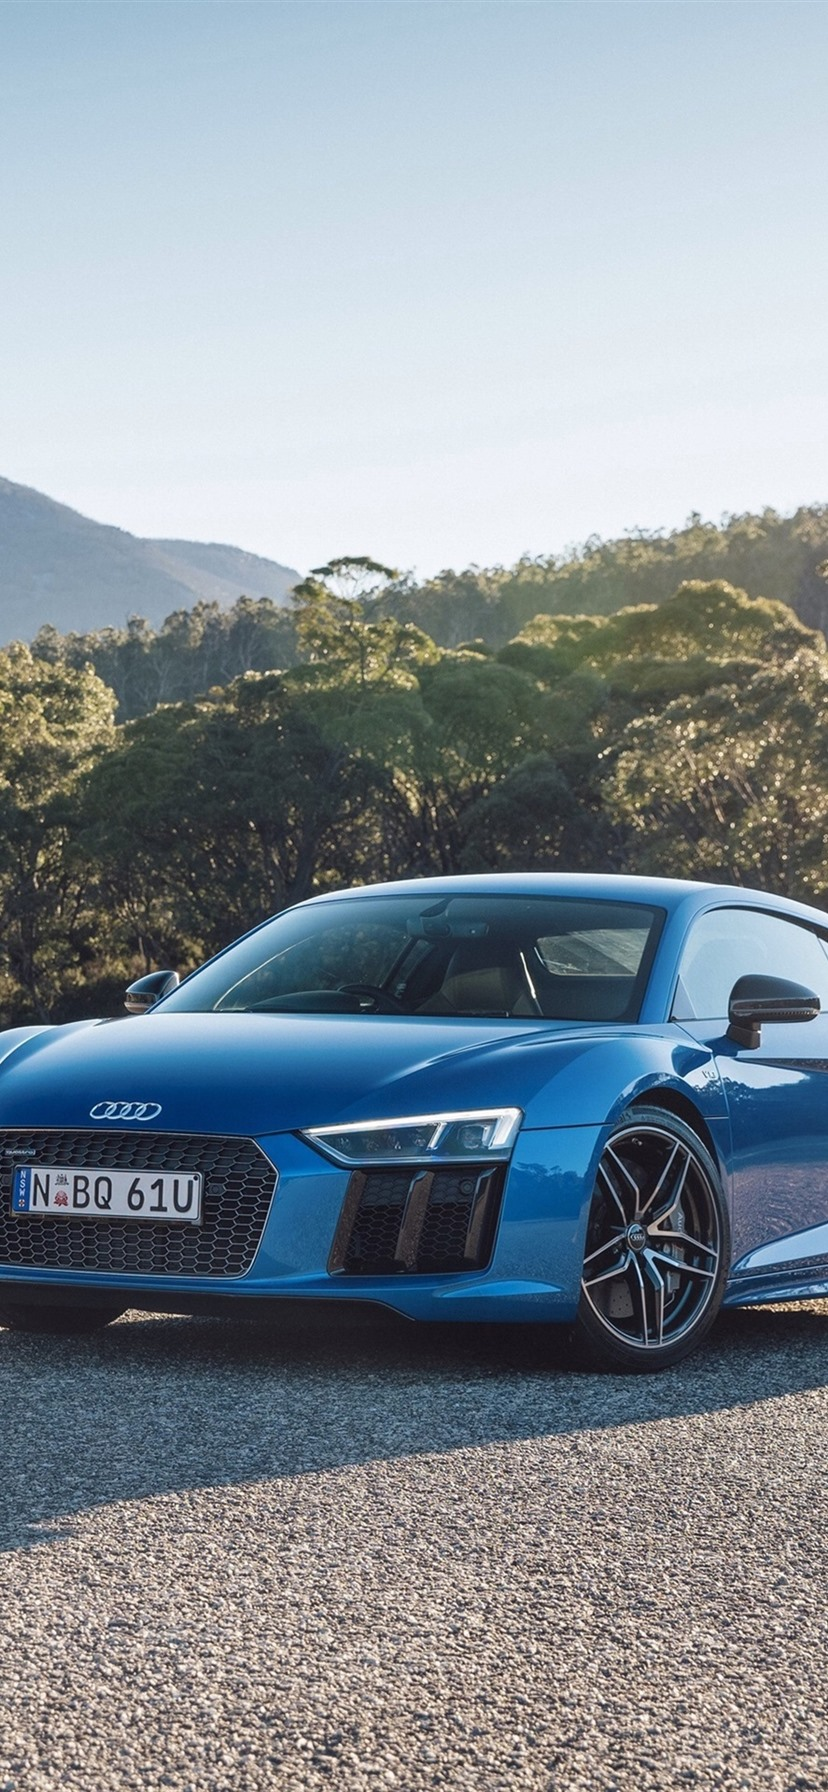 Audi R8 V10 Cars Yellow And Blue 1080x1920 Iphone 8 7 6 6s Plus Wallpaper Background Picture Image